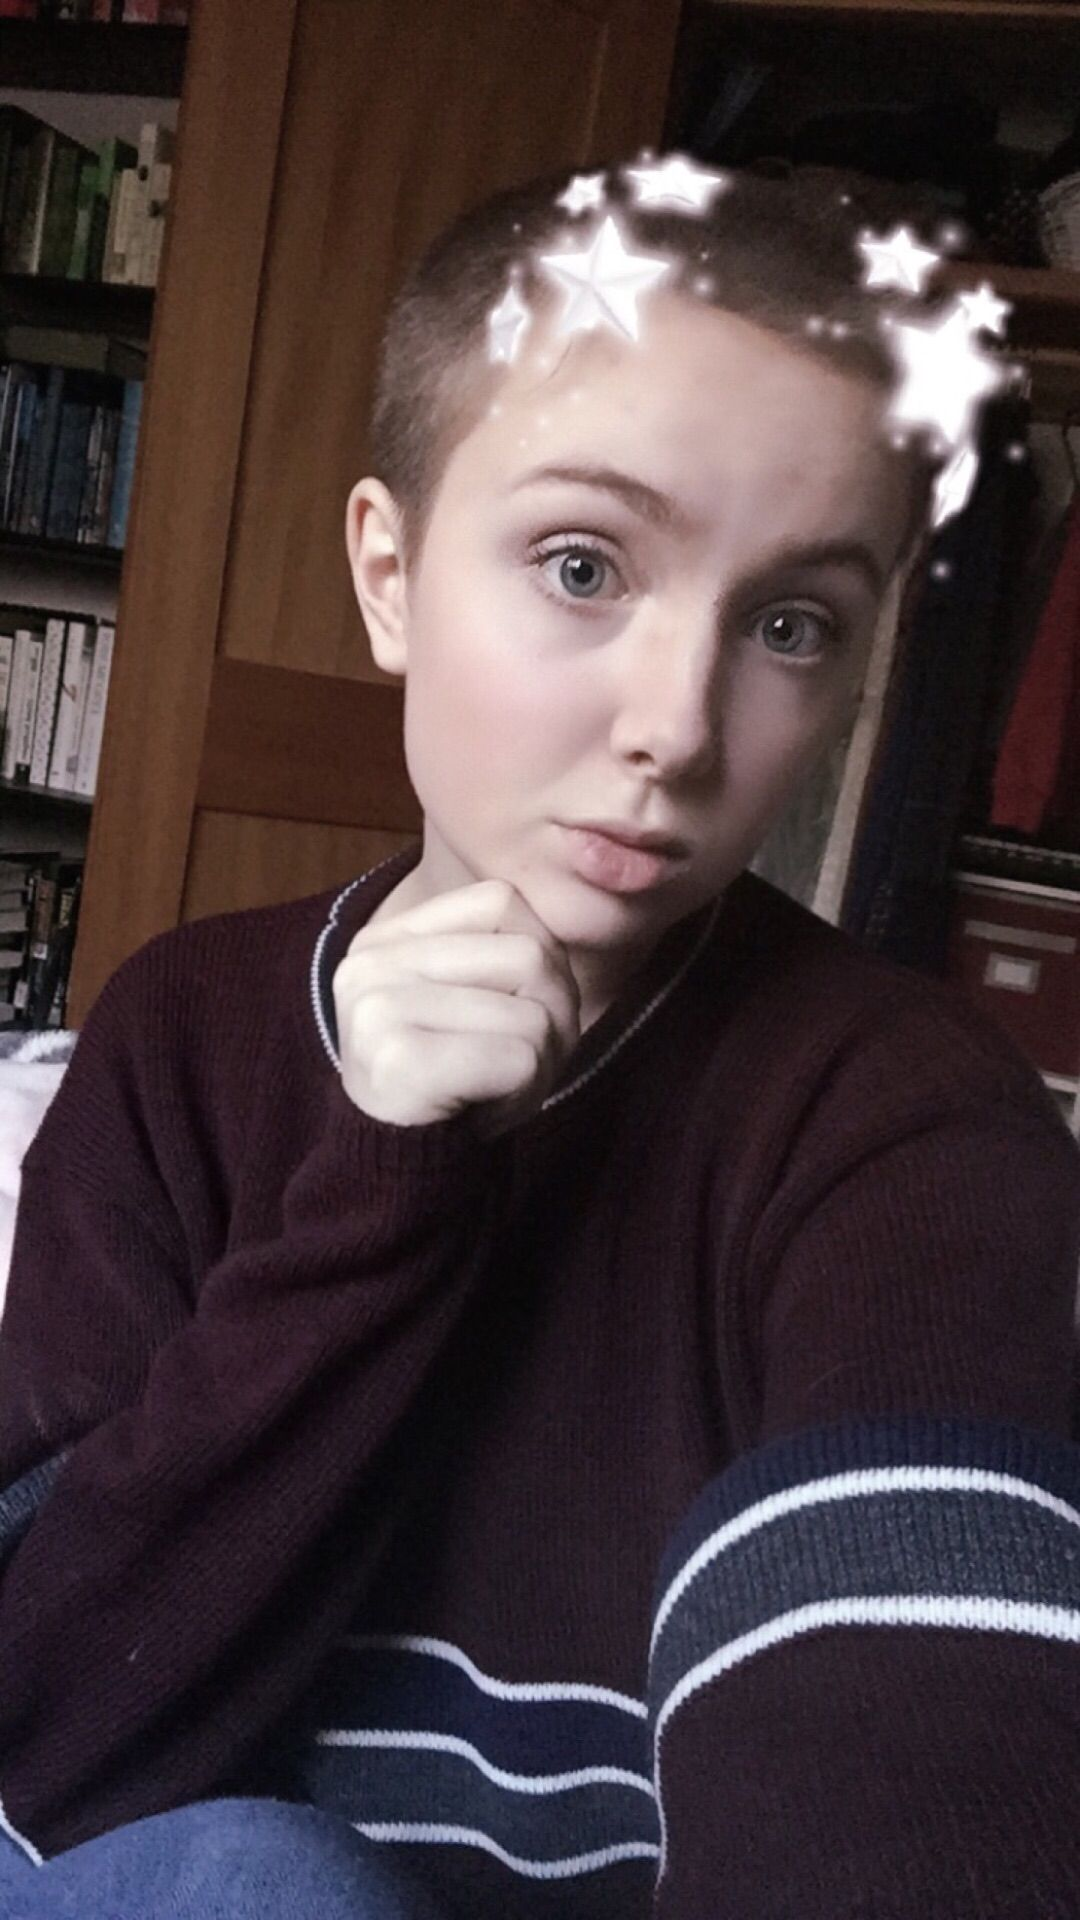 i found this girl on tumblr and i loved her buzzcut | hair